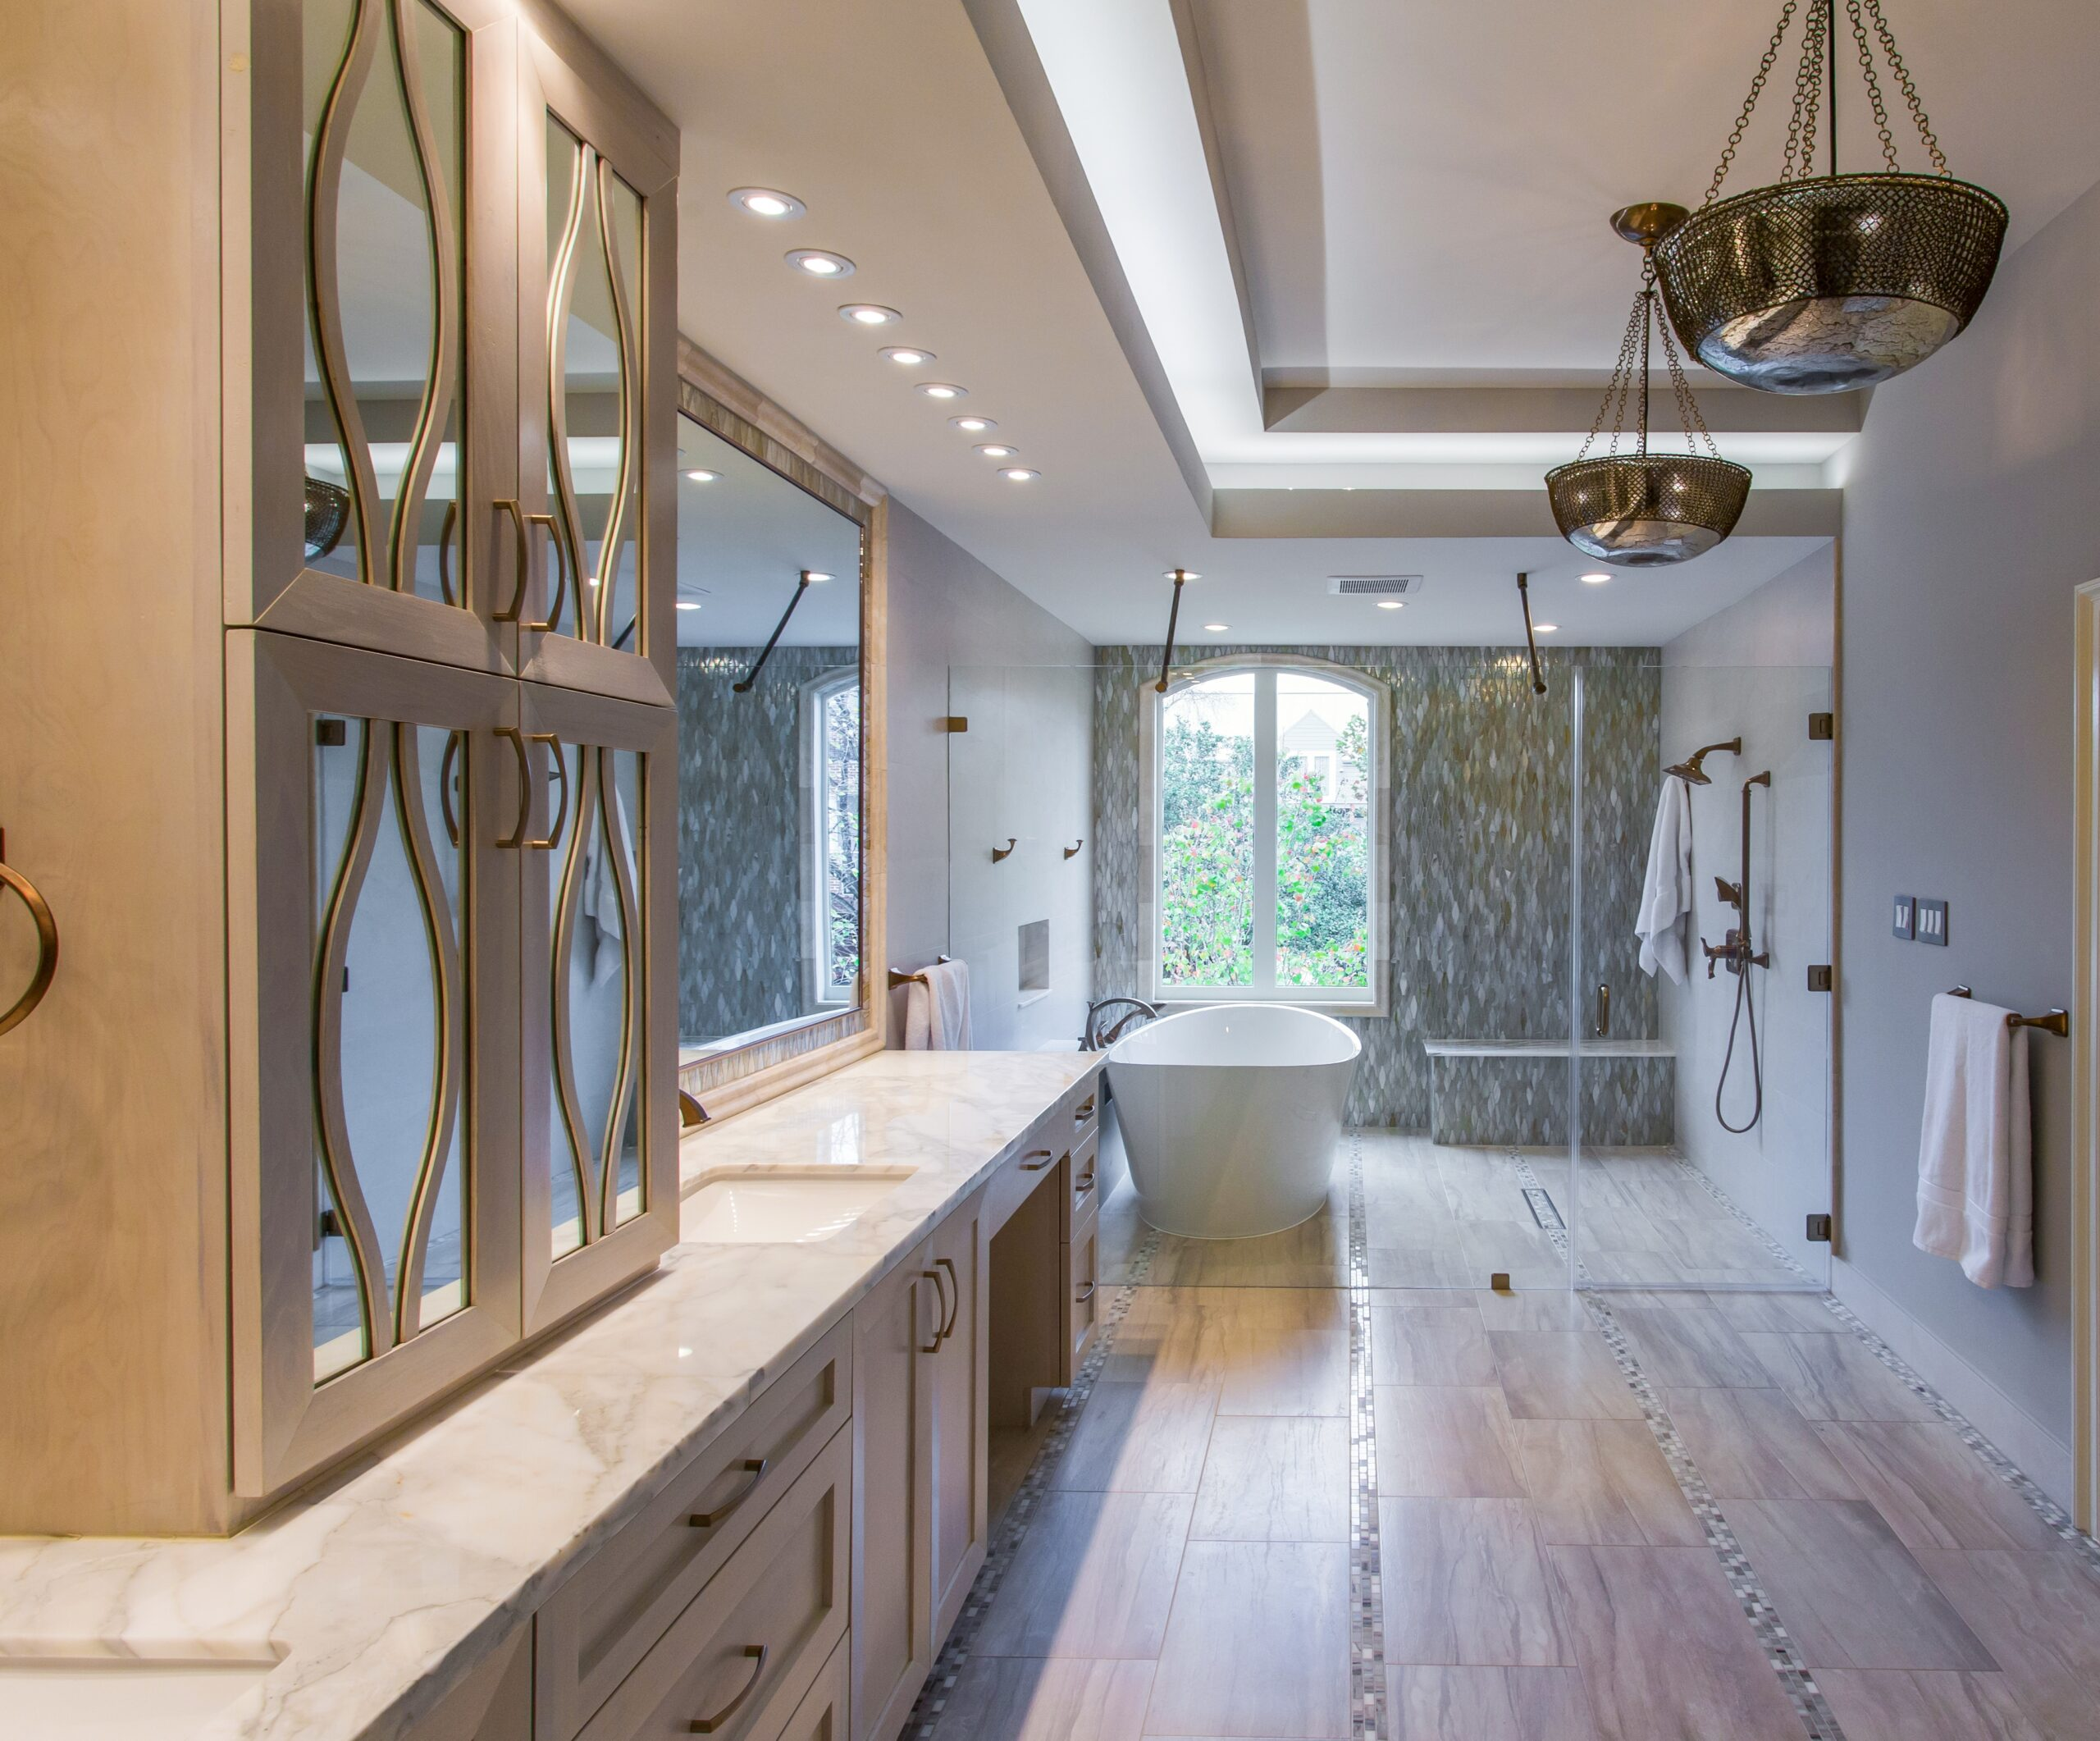 Houston Bathroom Remodeling River Oaks Houston Texas Tranquil Spa Master Bathroom Remodel